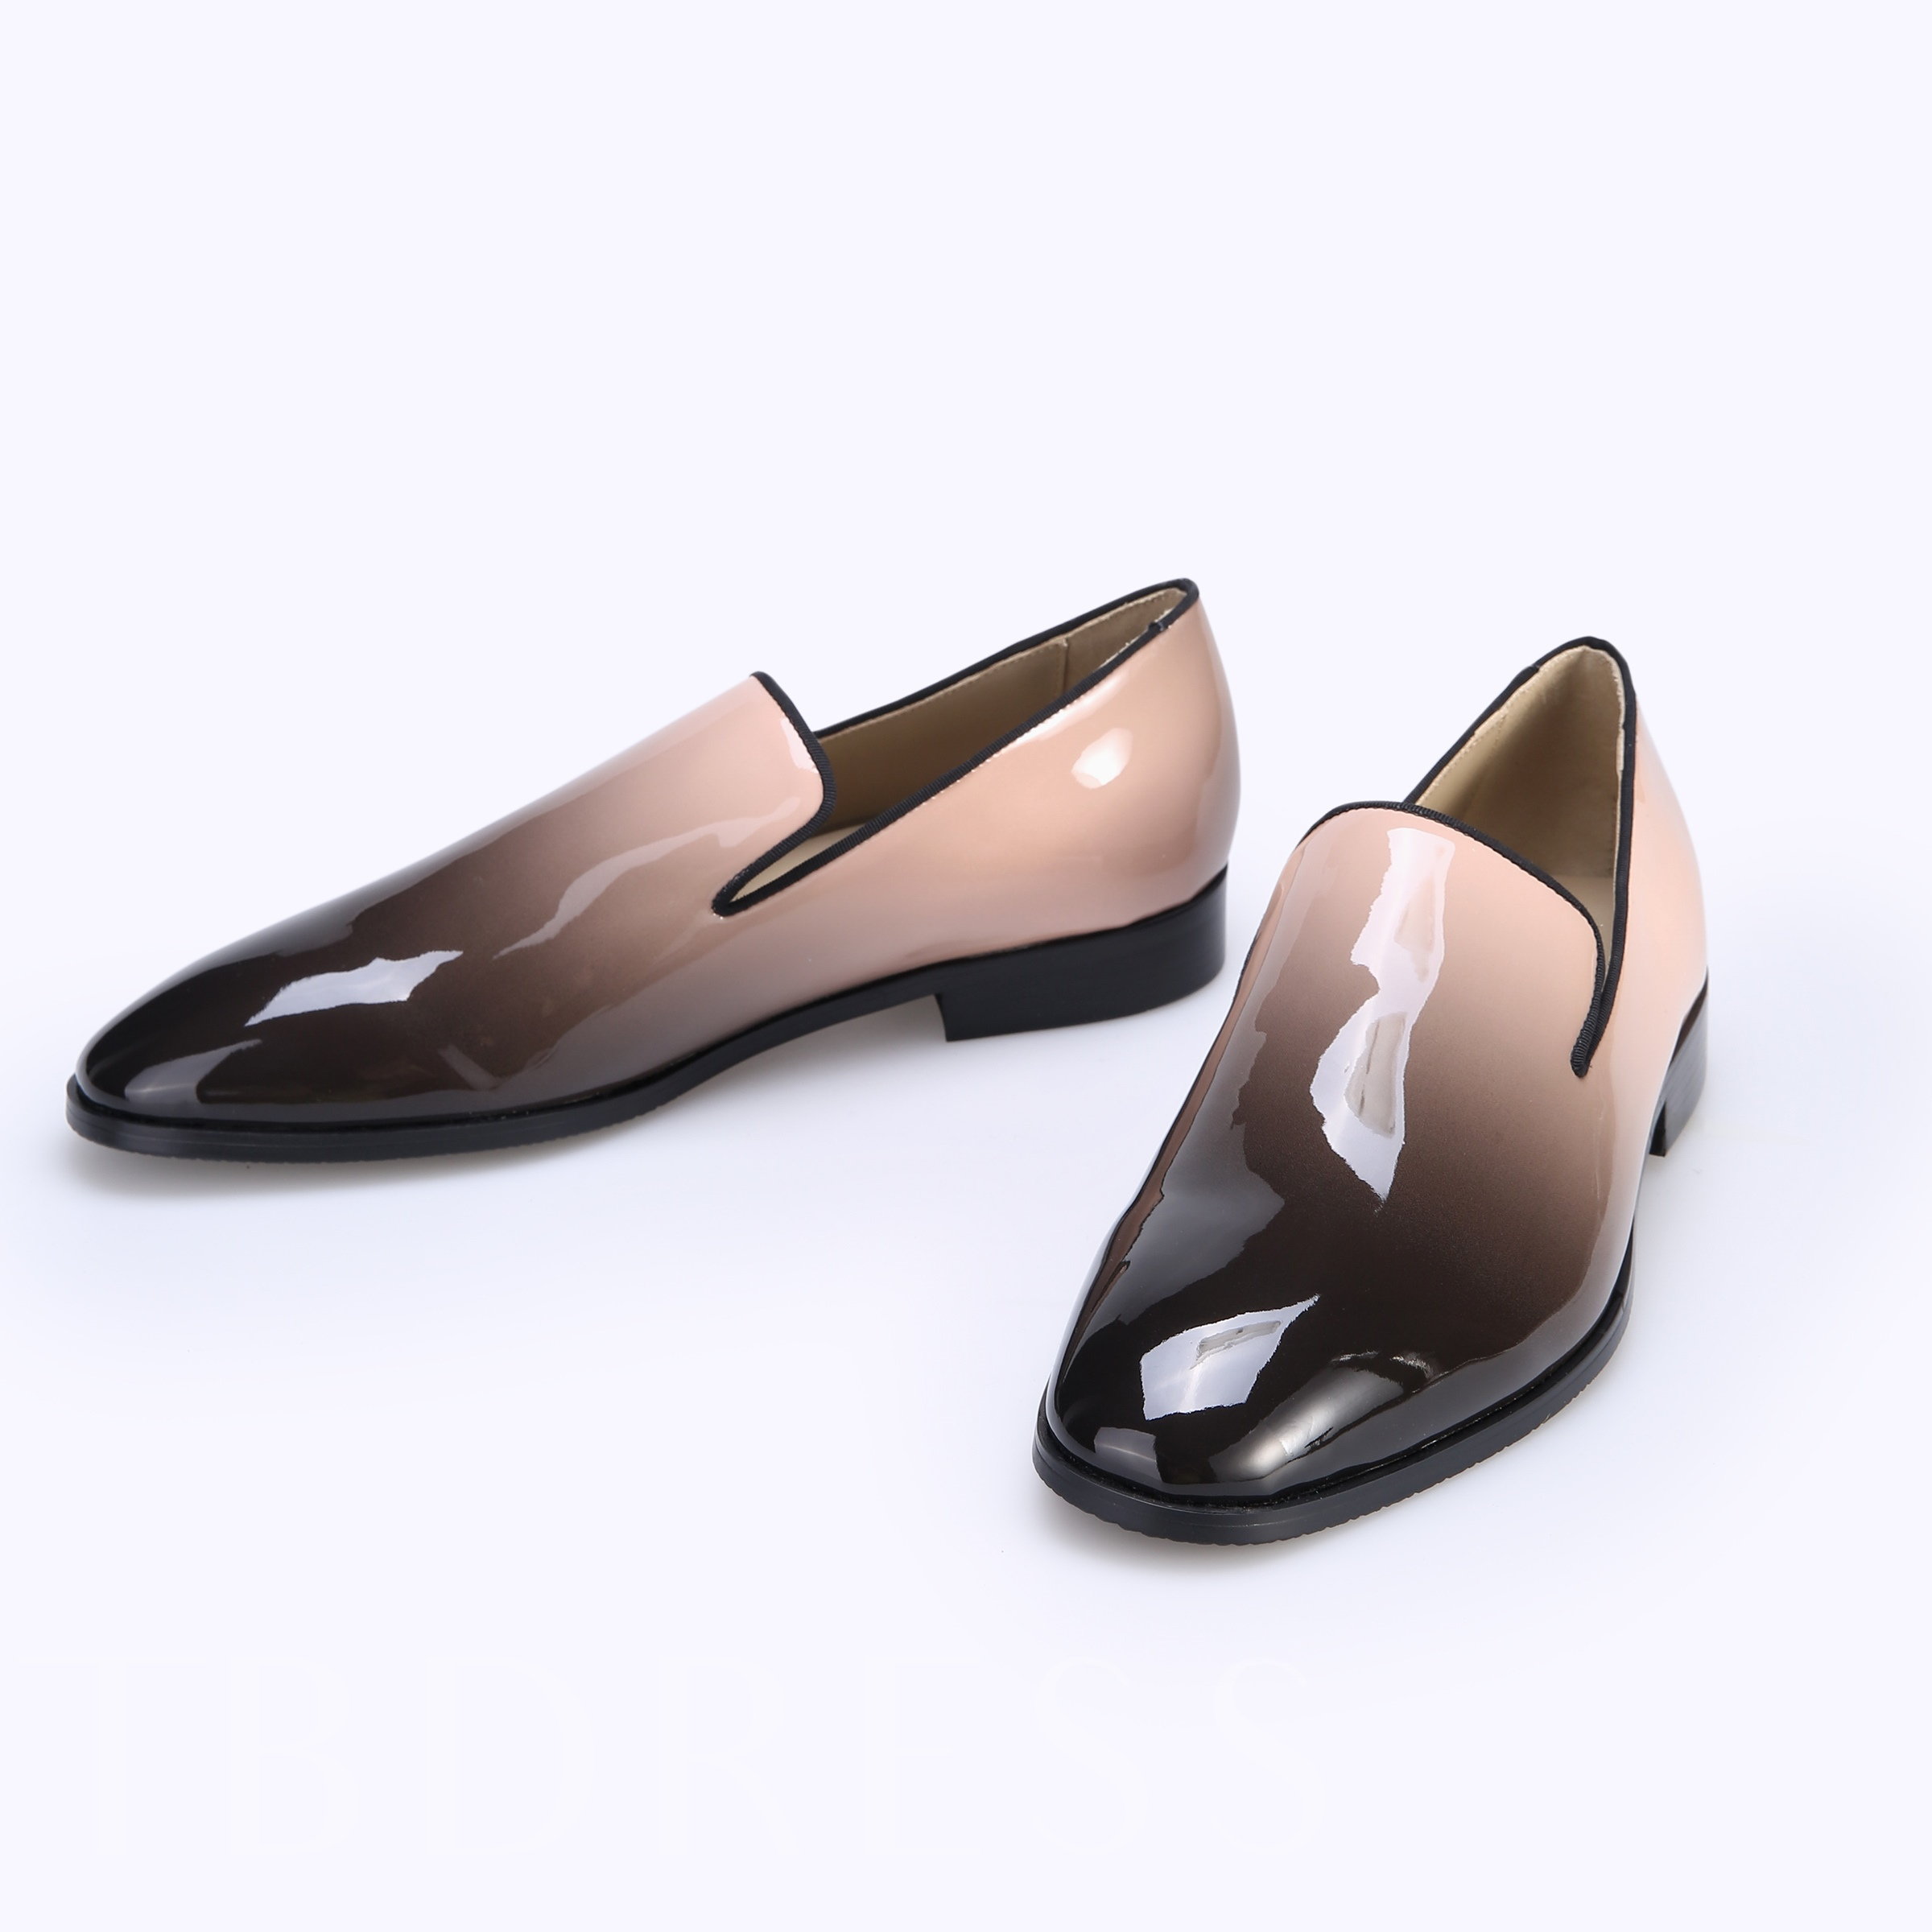 Gradient Patent Leather Slip-On Square Toe Men's Dress Shoes